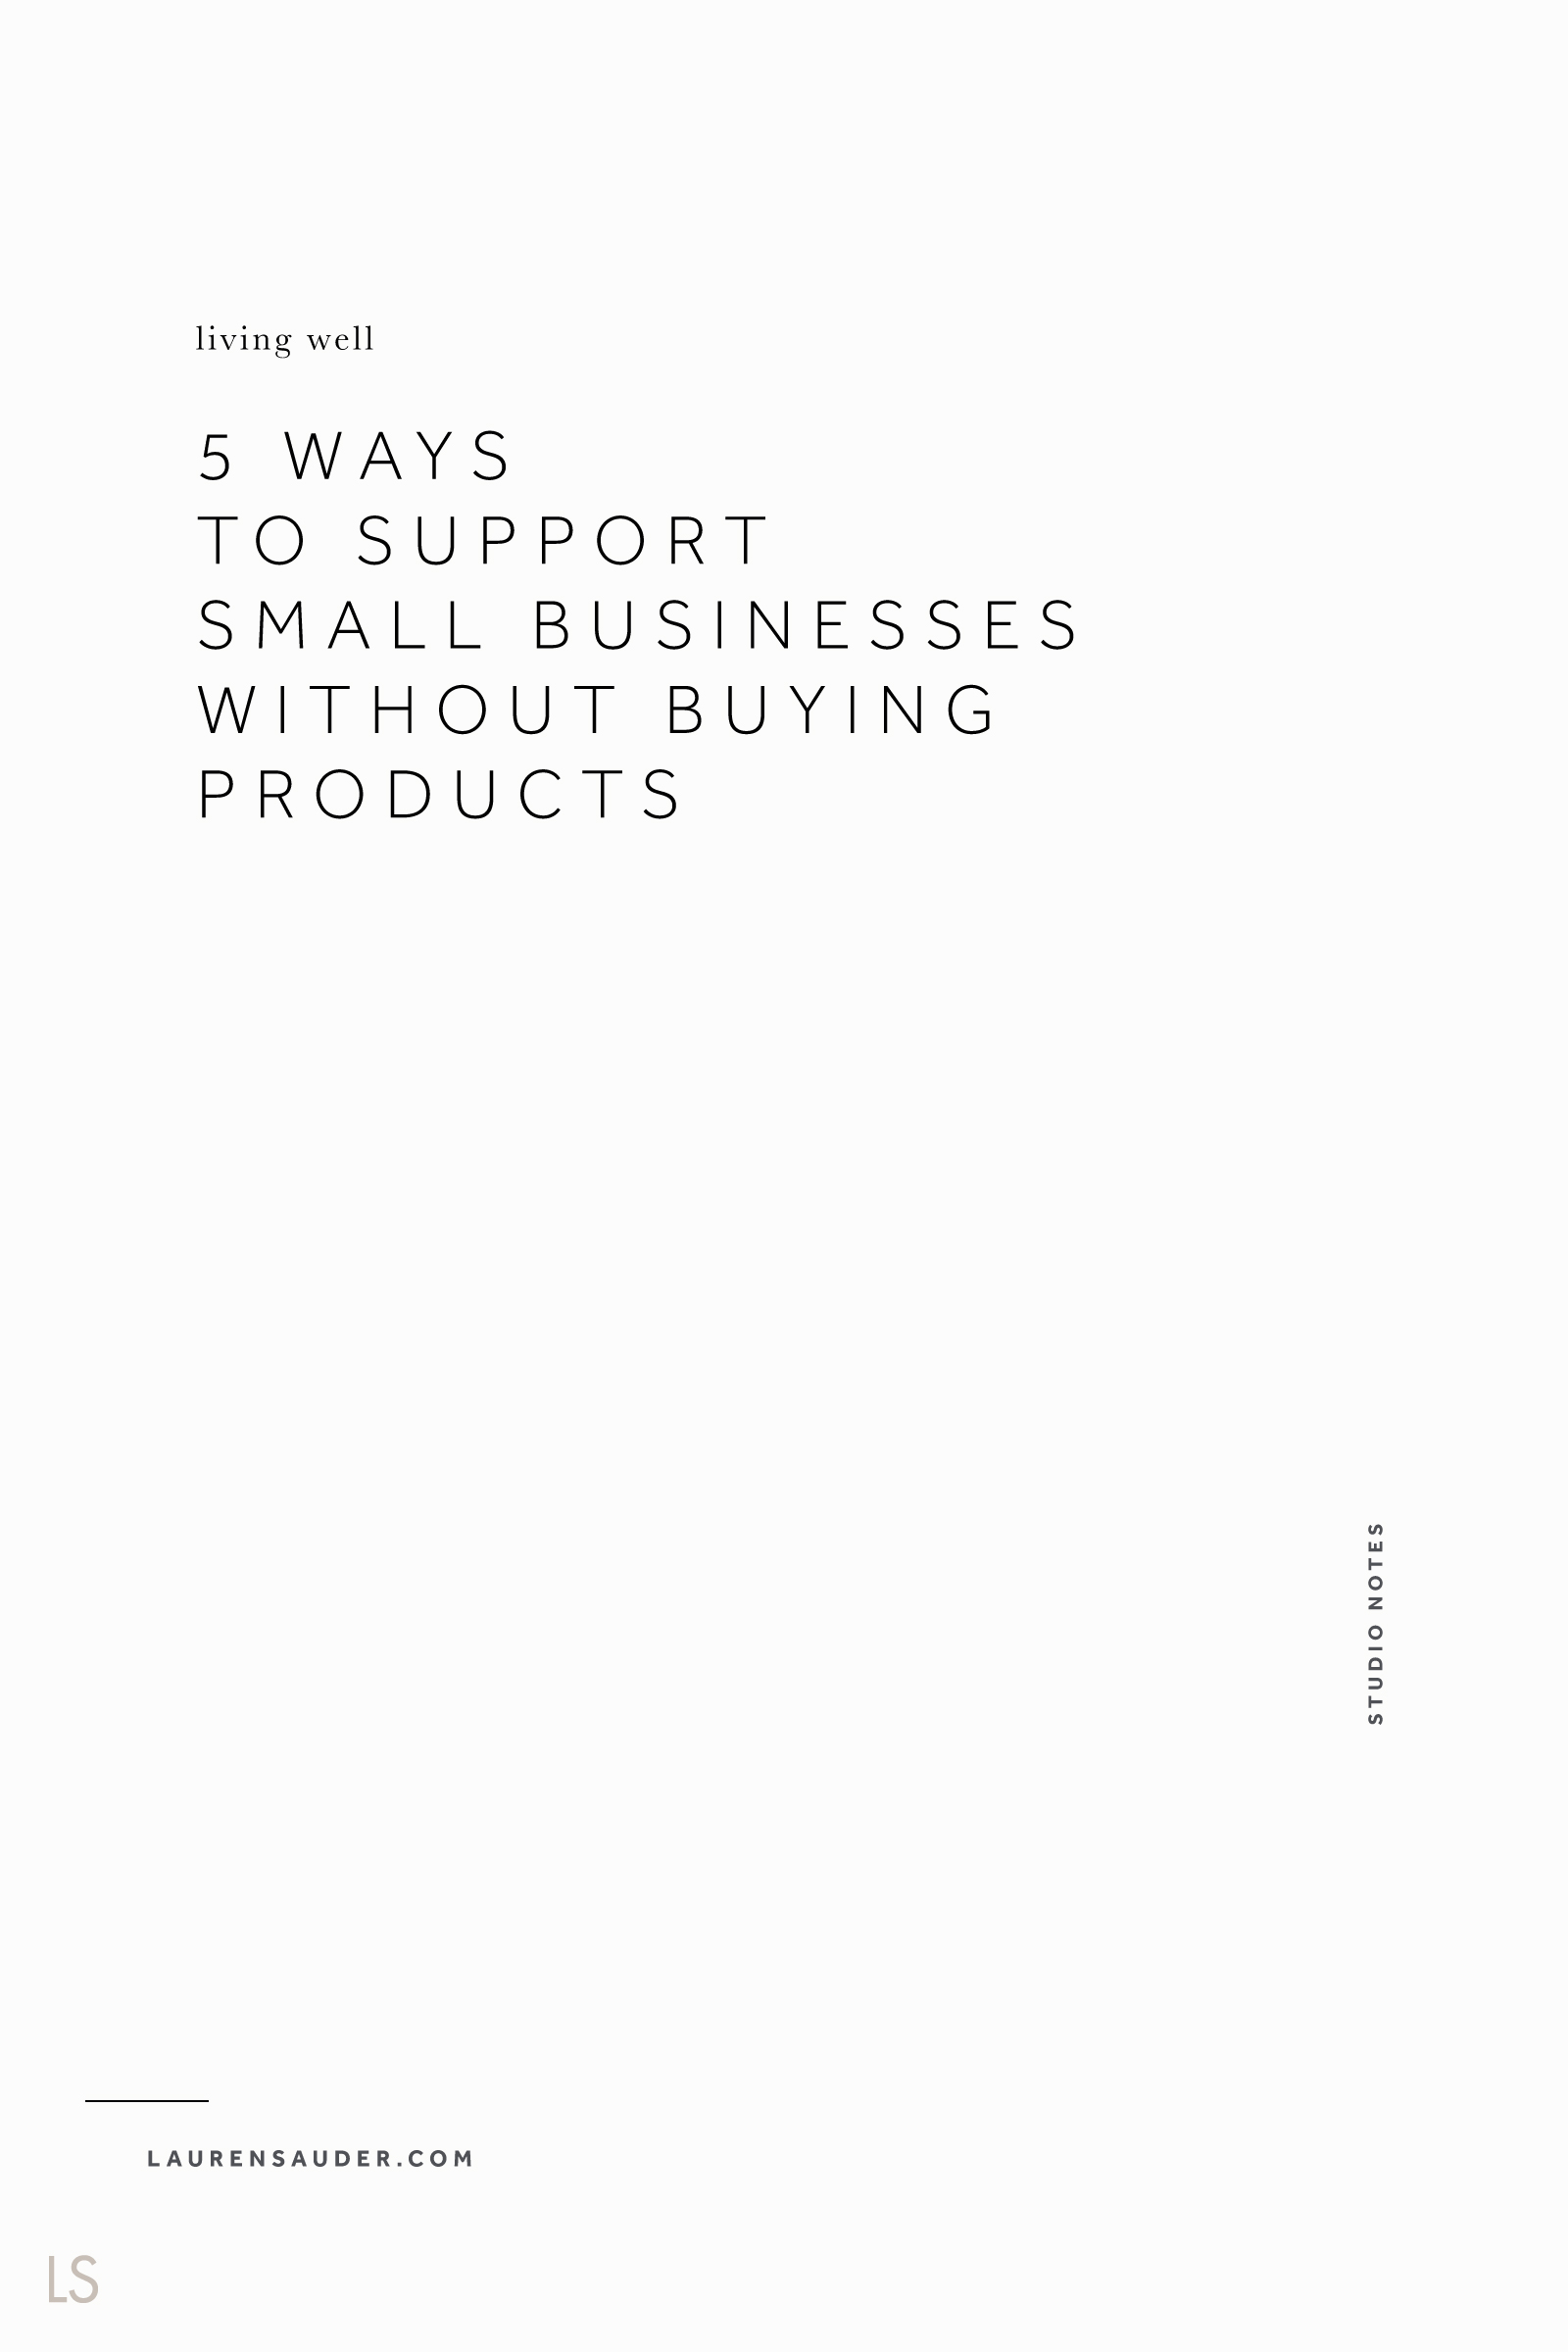 5 Ways to Support Small Businesses Without Buying Products  - Lauren Sauder support small, shop local, small business, small business Saturday, holiday gift, holiday ideas